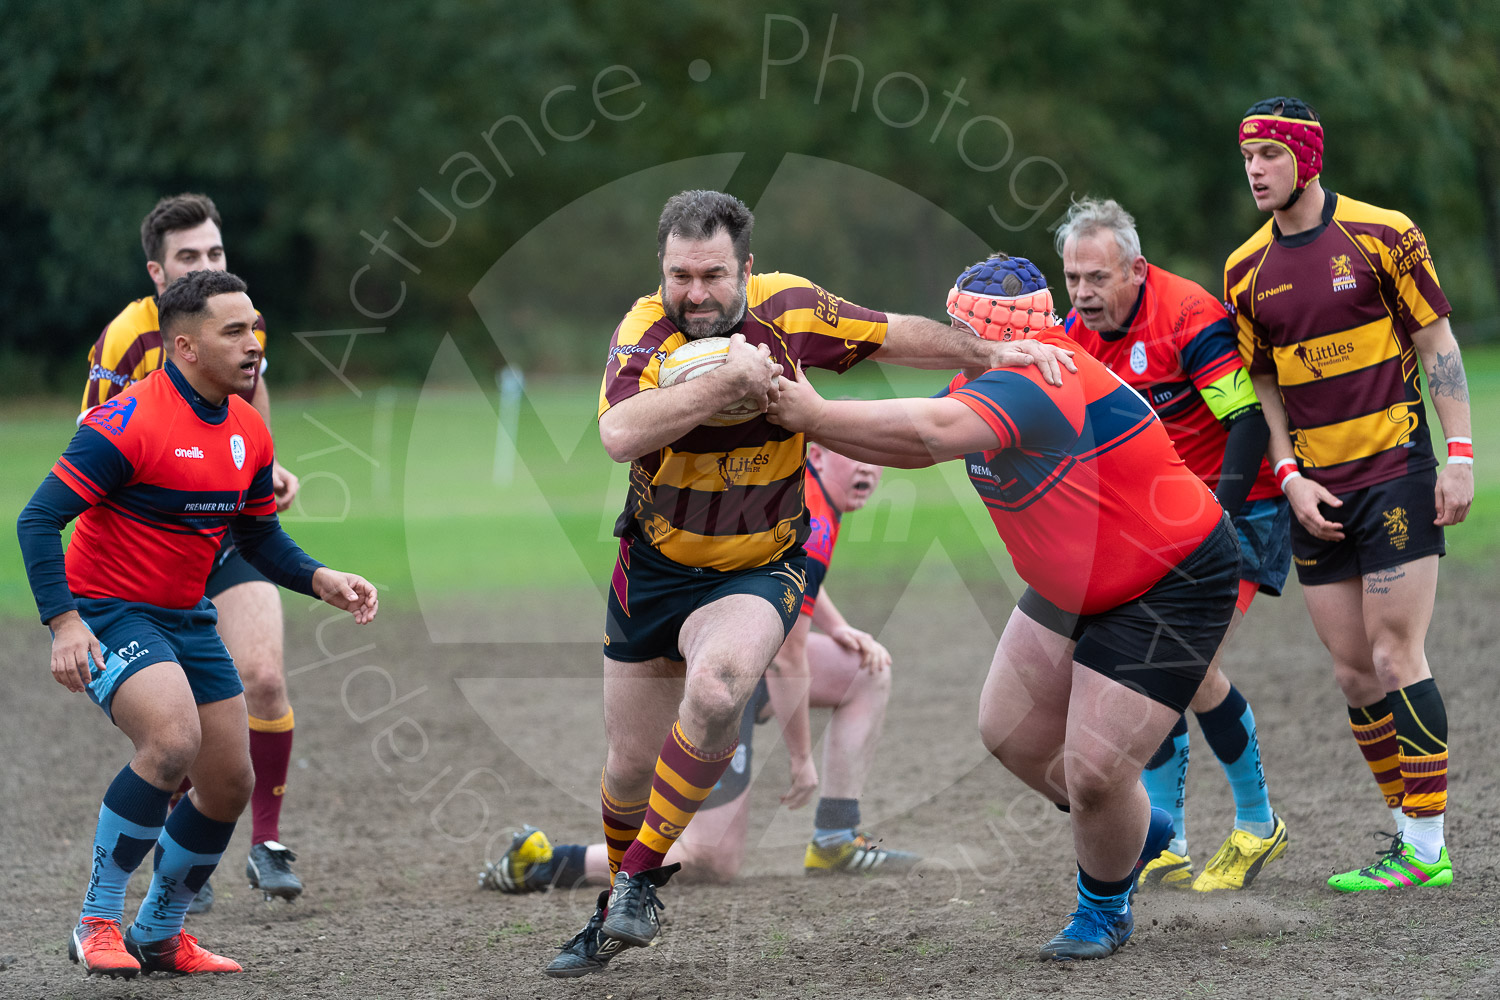 20181027 Amp Extras vs St Neots 2nd XV #2195